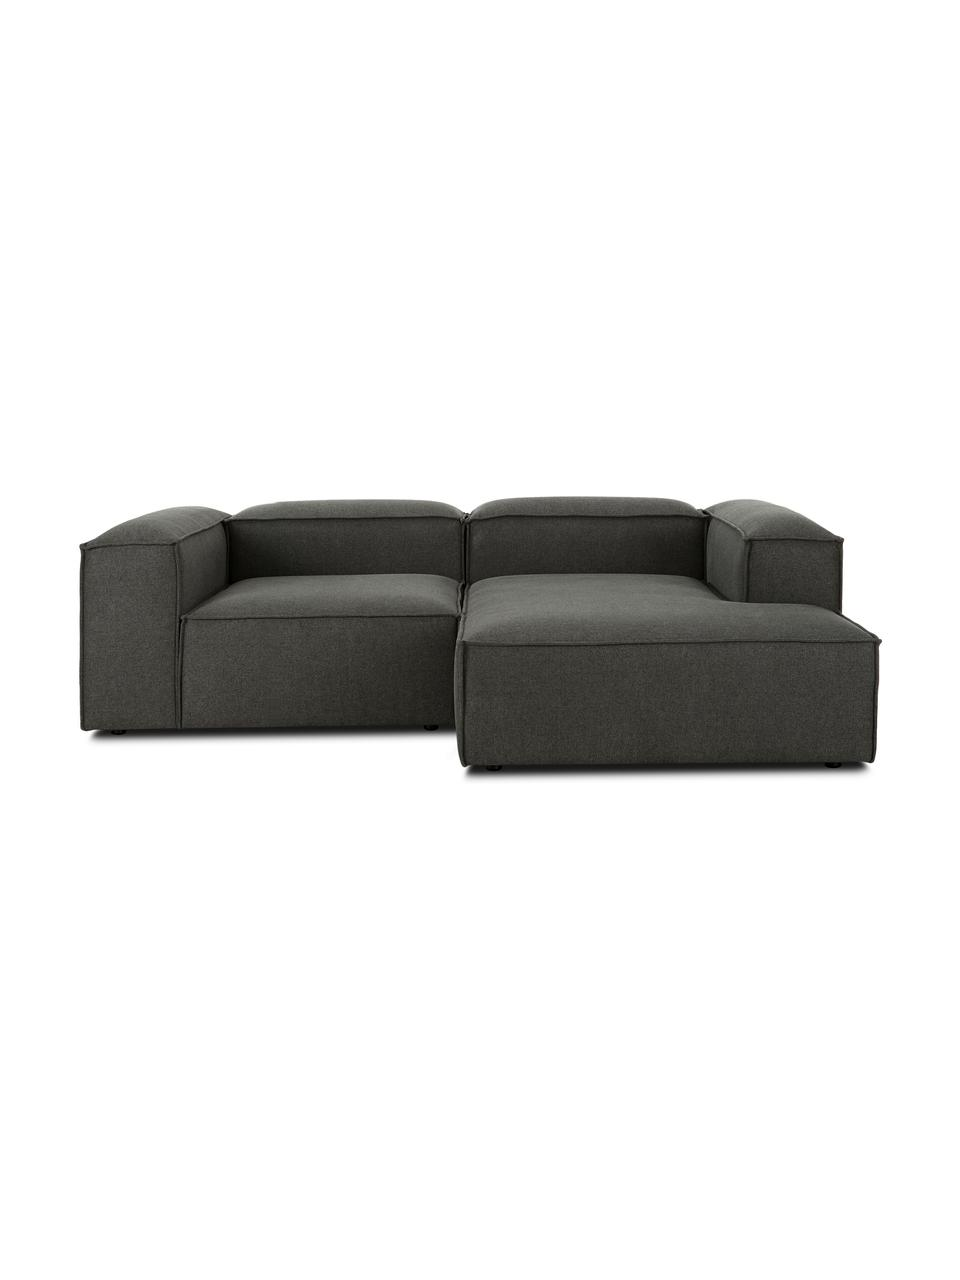 Canapé d'angle modulable gris anthracite Lennon, Tissu anthracite